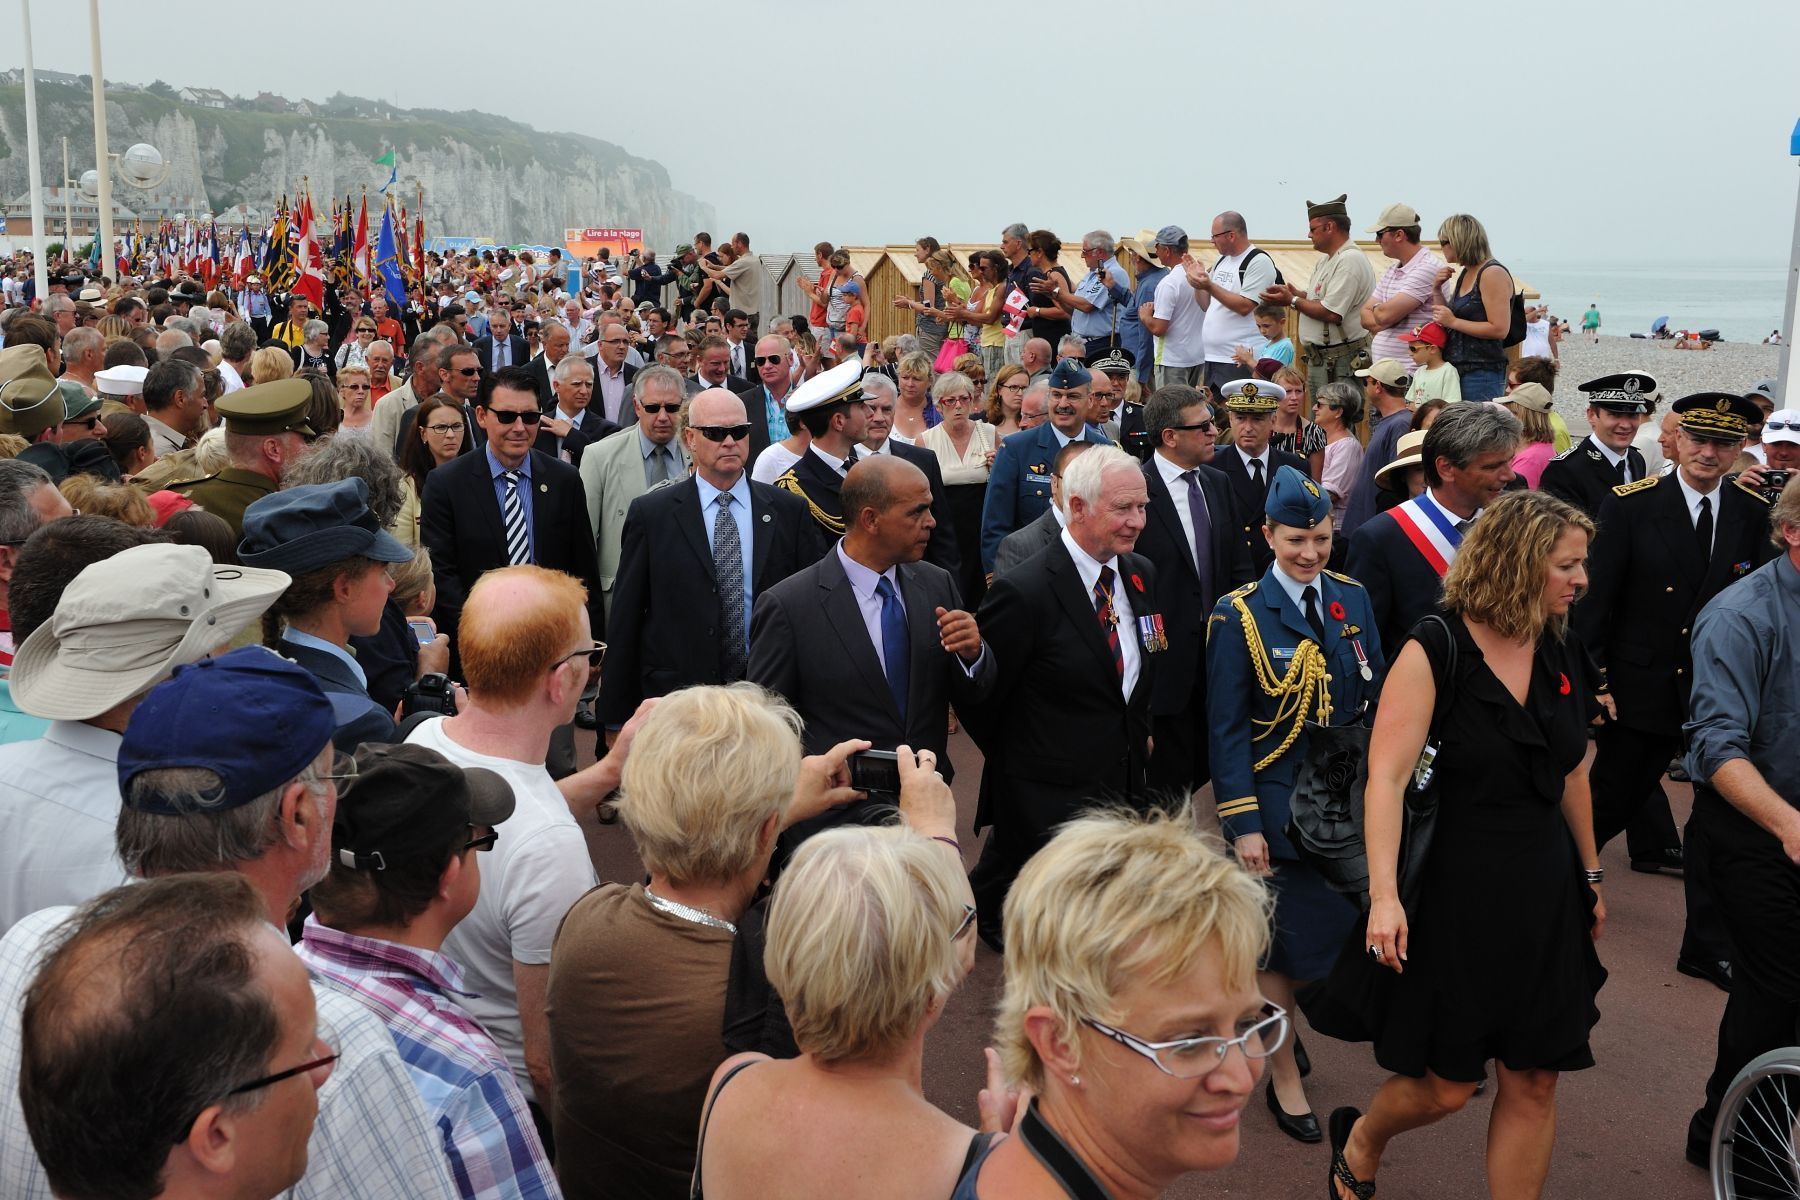 Thanks to the beautiful weather in Dieppe, following the ceremony, hundreds of people where there to witness the solemn parade along the beach.